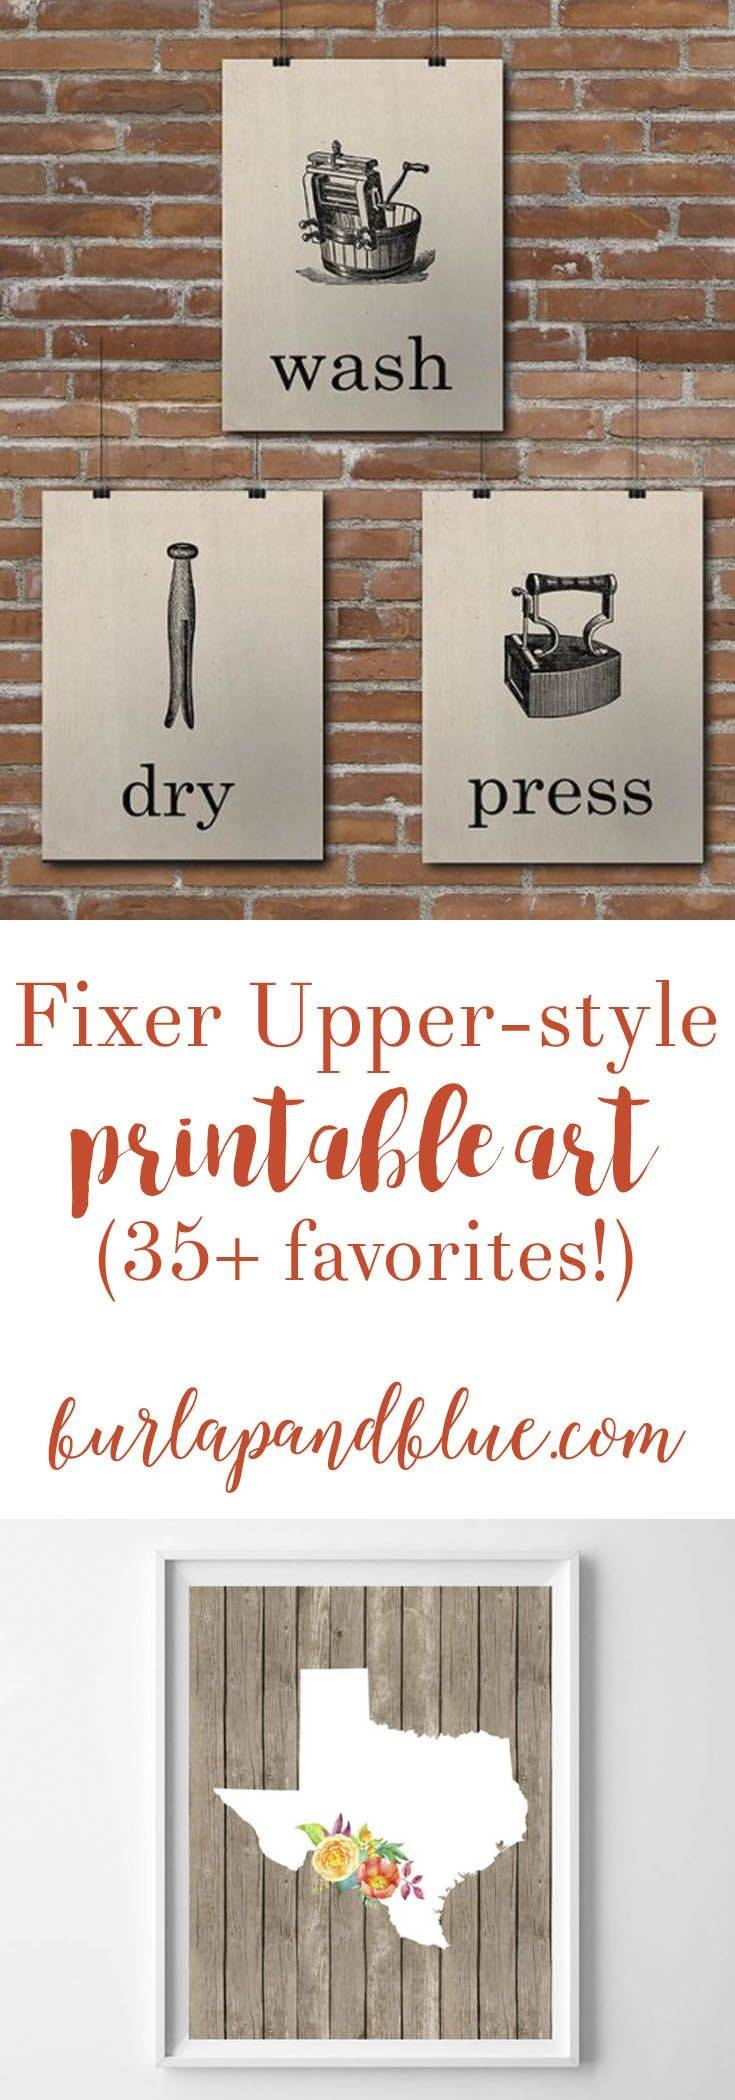 Best 25+ Laundry Room Printables Ideas On Pinterest | Laundry Art Regarding Recent Laundry Room Wall Art Decors (View 7 of 25)